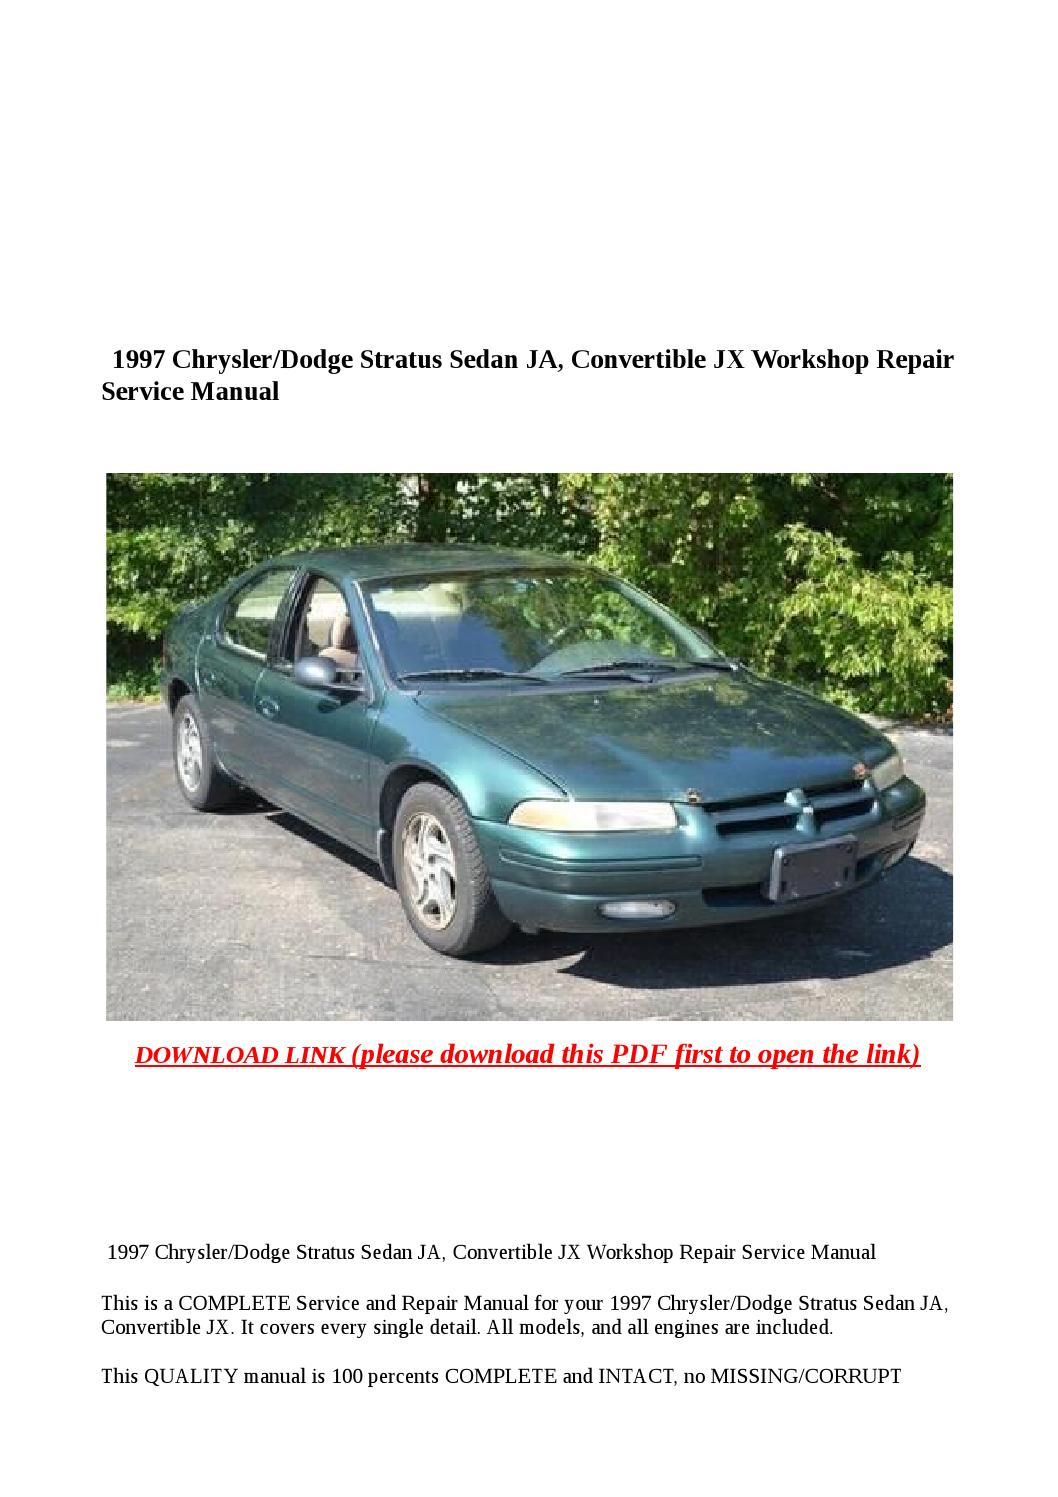 1997 chrysler dodge stratus sedan ja, convertible jx workshop repair  service manual by Anna Tang - issuu